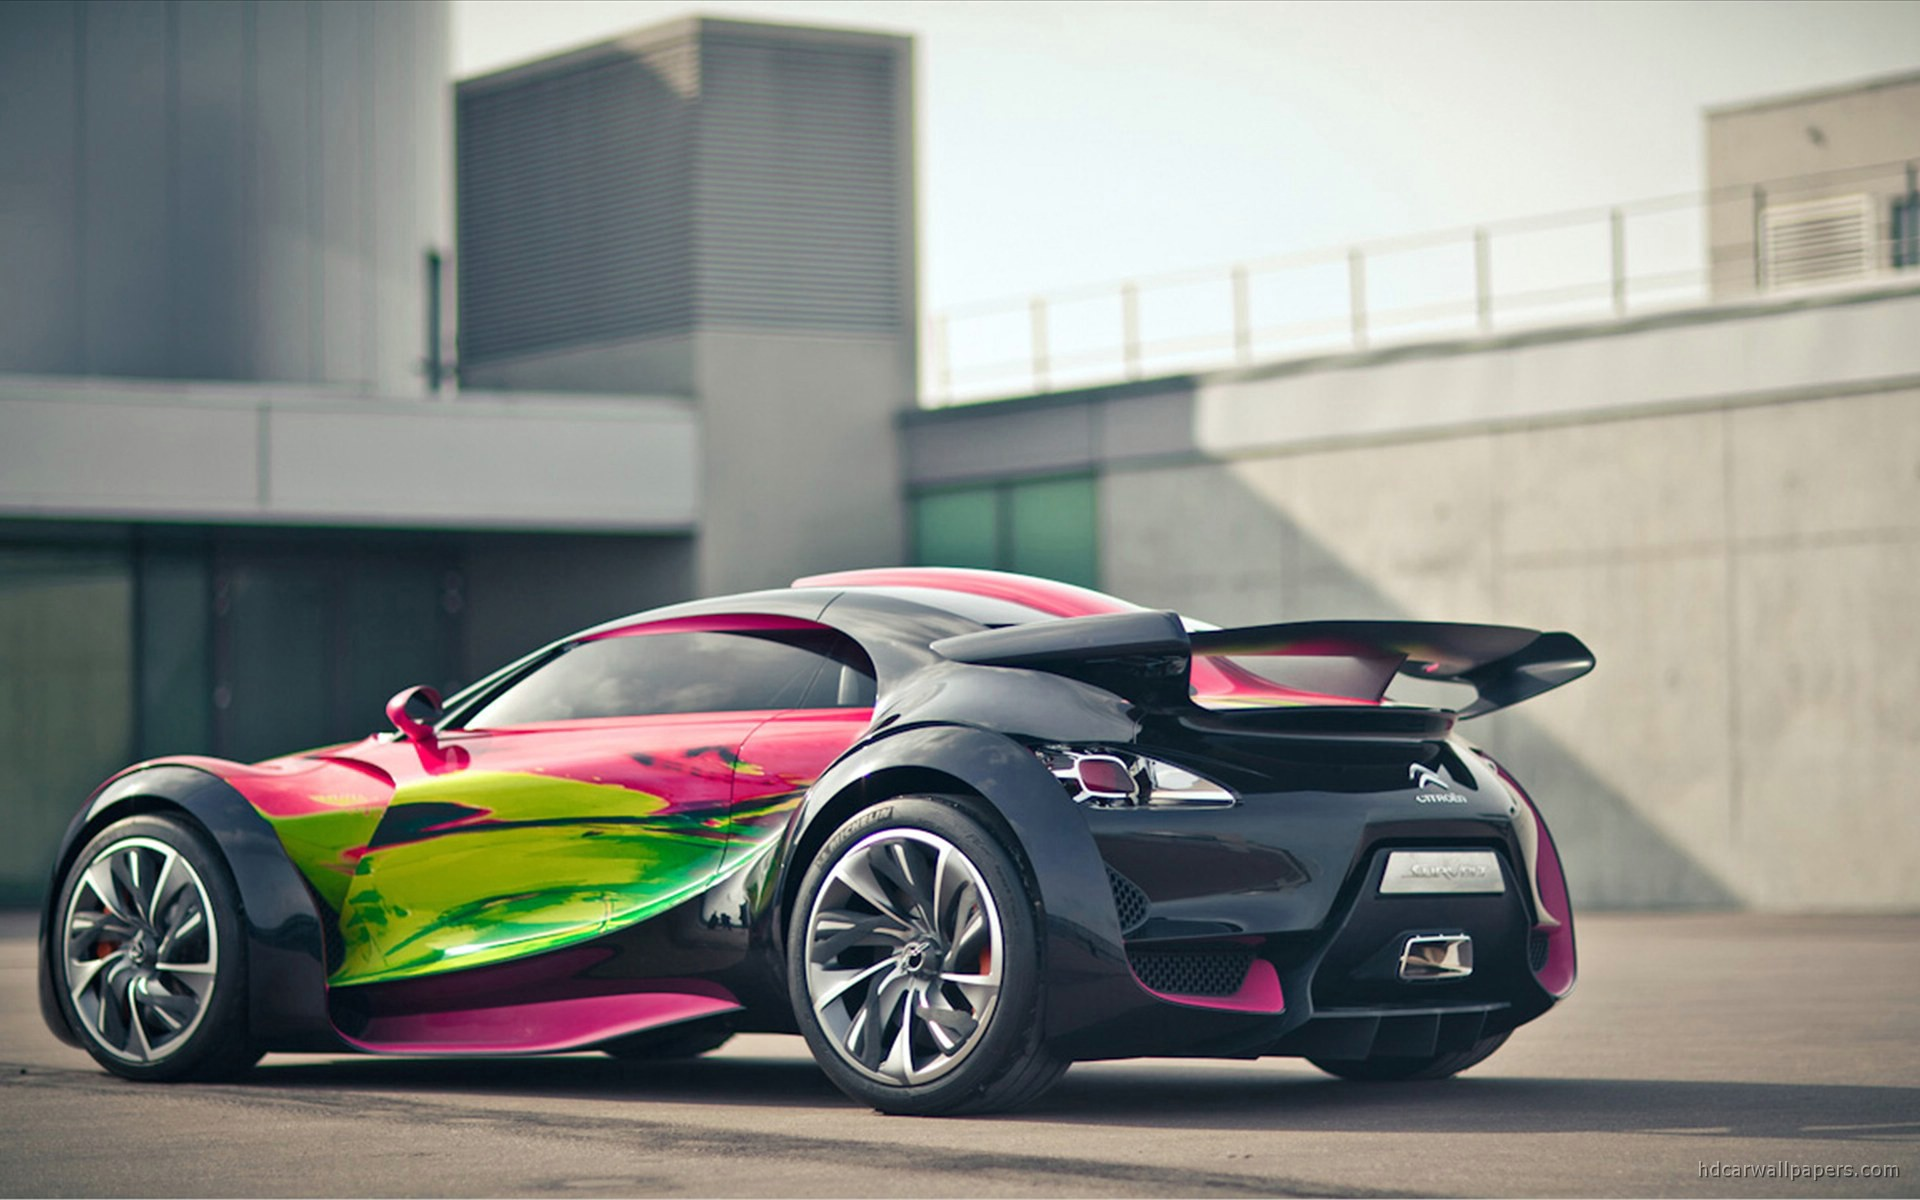 Citroen Survolt wallpapers and images - wallpapers, pictures, photos